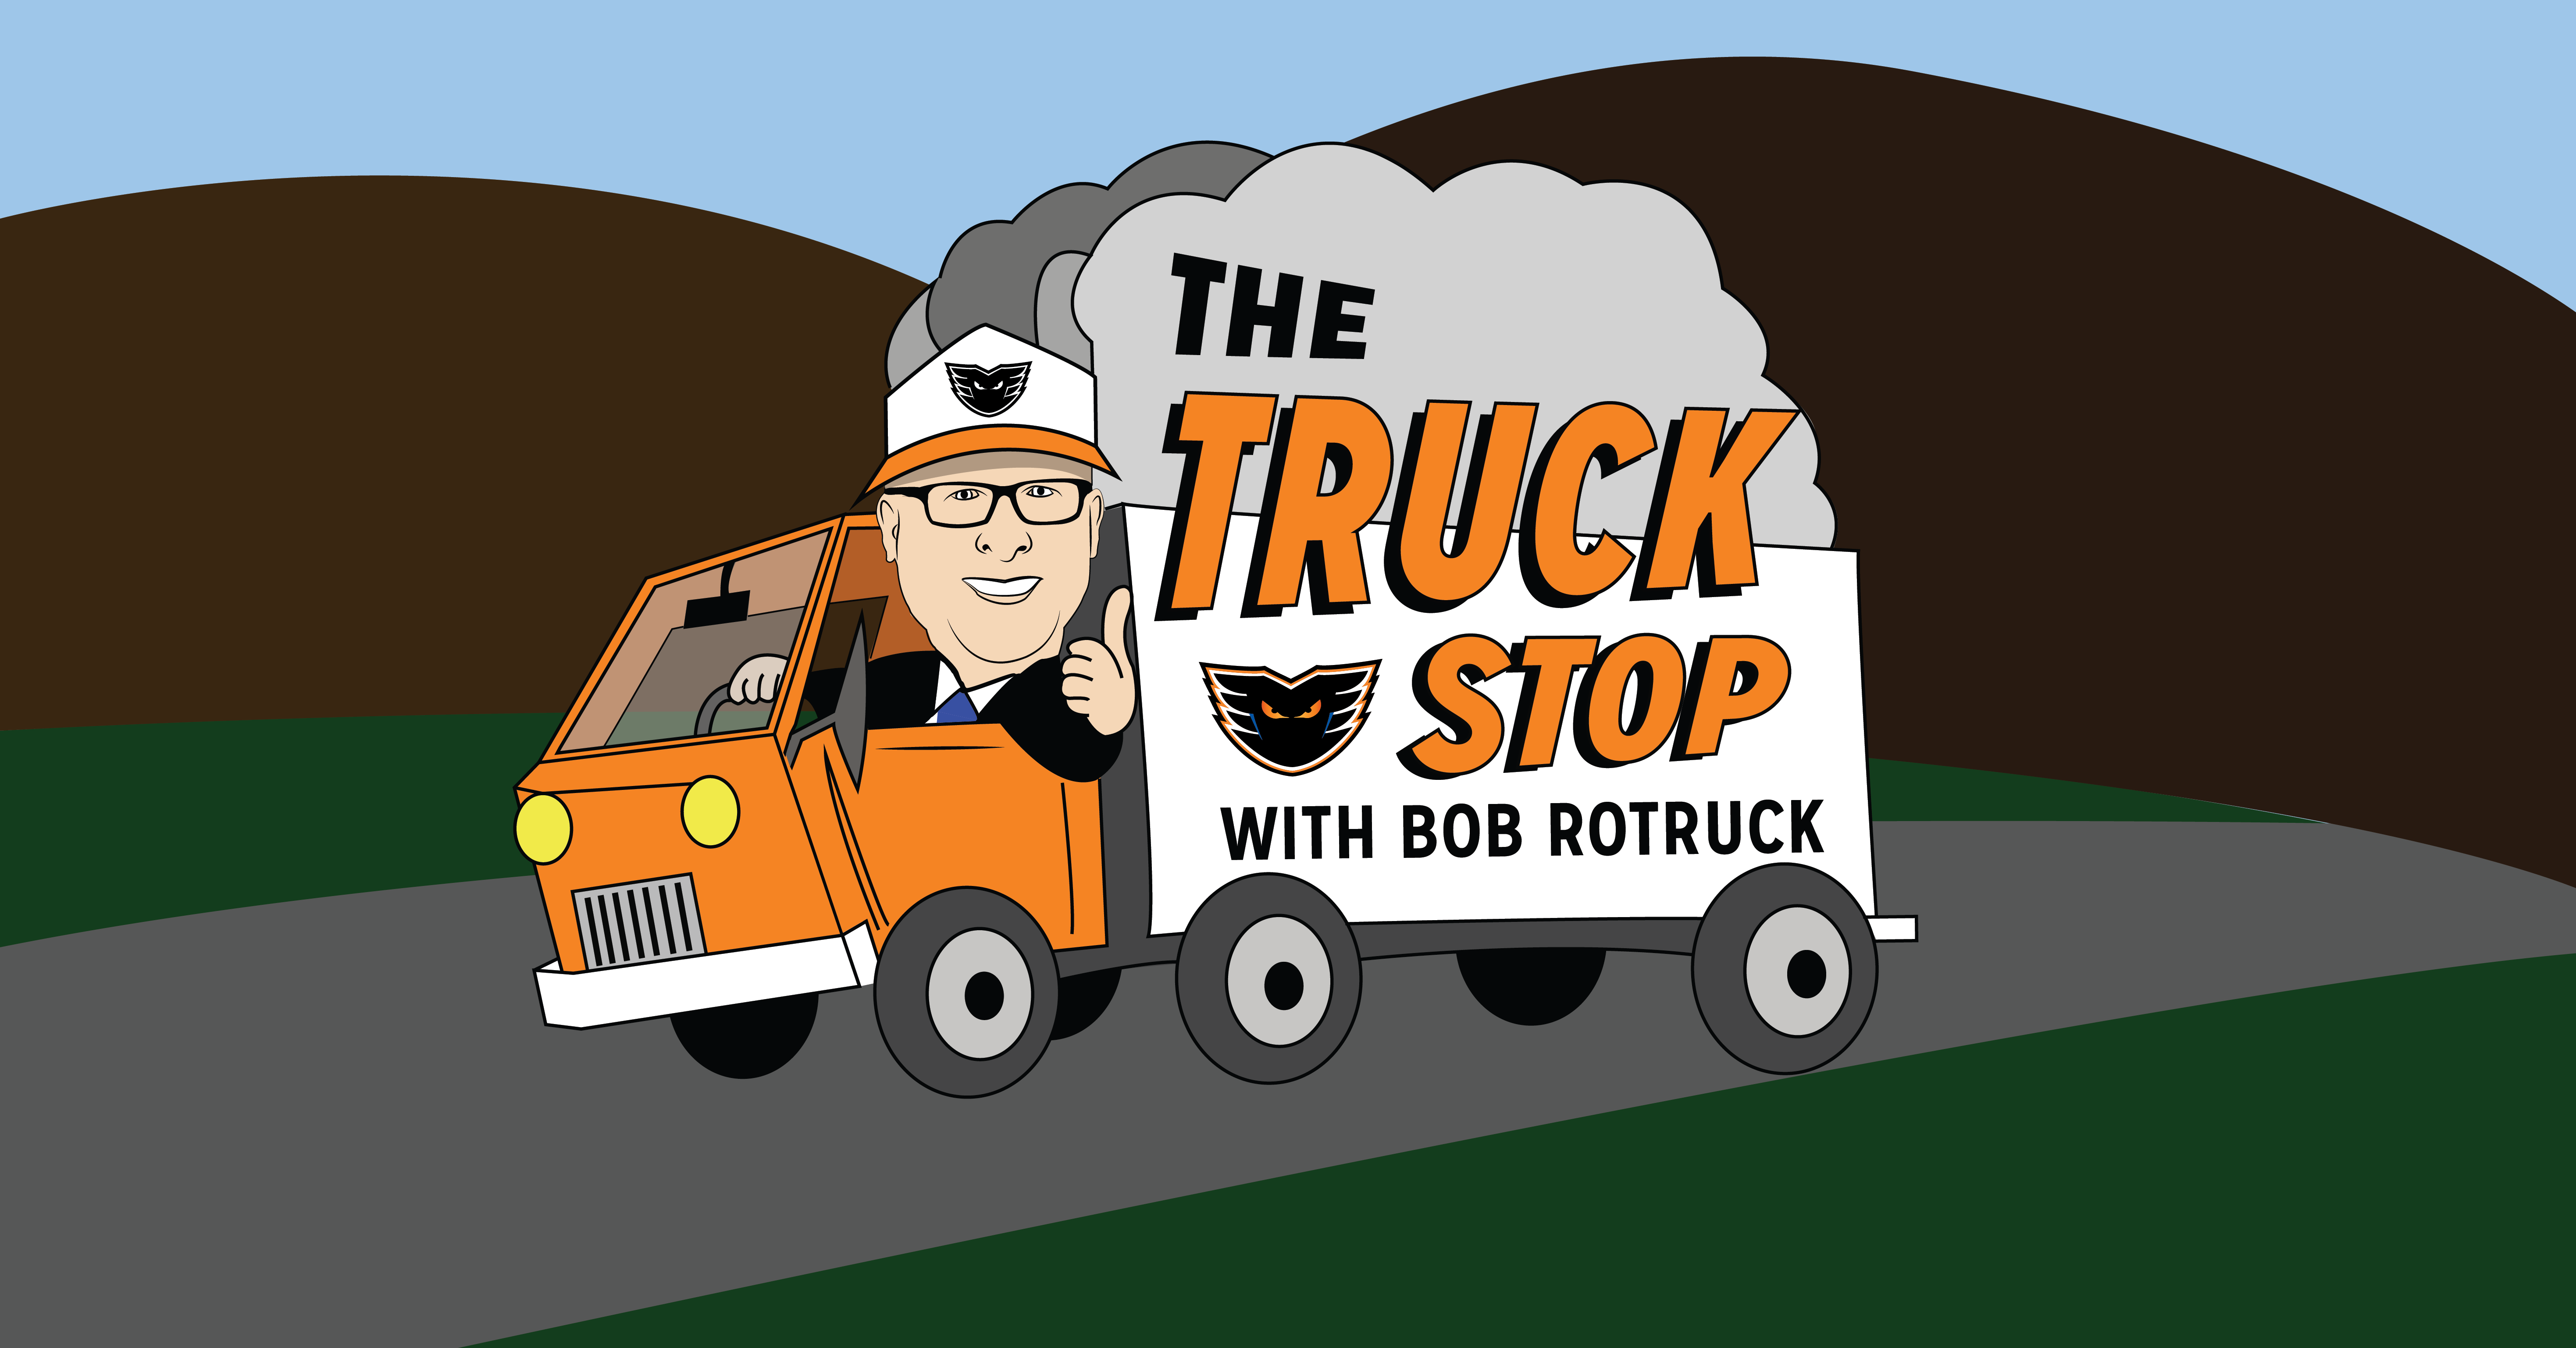 The Truck Stop with Bob Rotruck